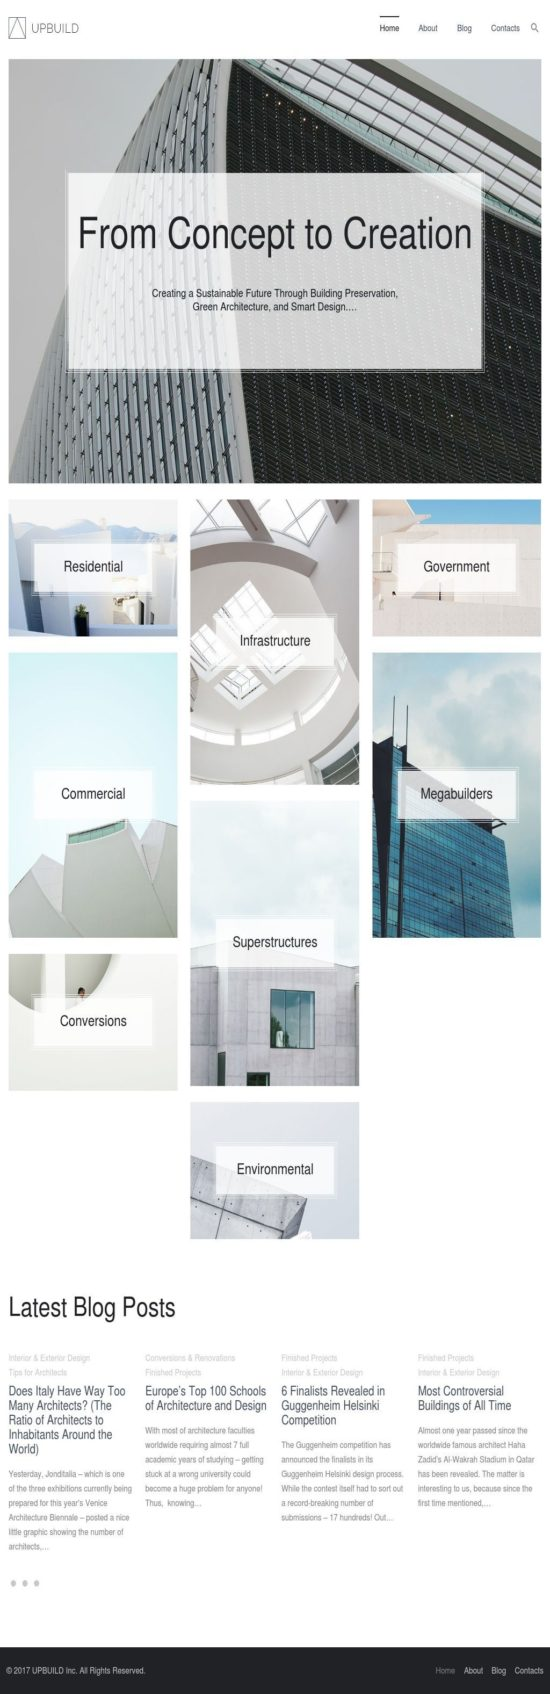 upbuild achitecture wordpress theme 01 550x1694 - Upbuild WordPress Theme